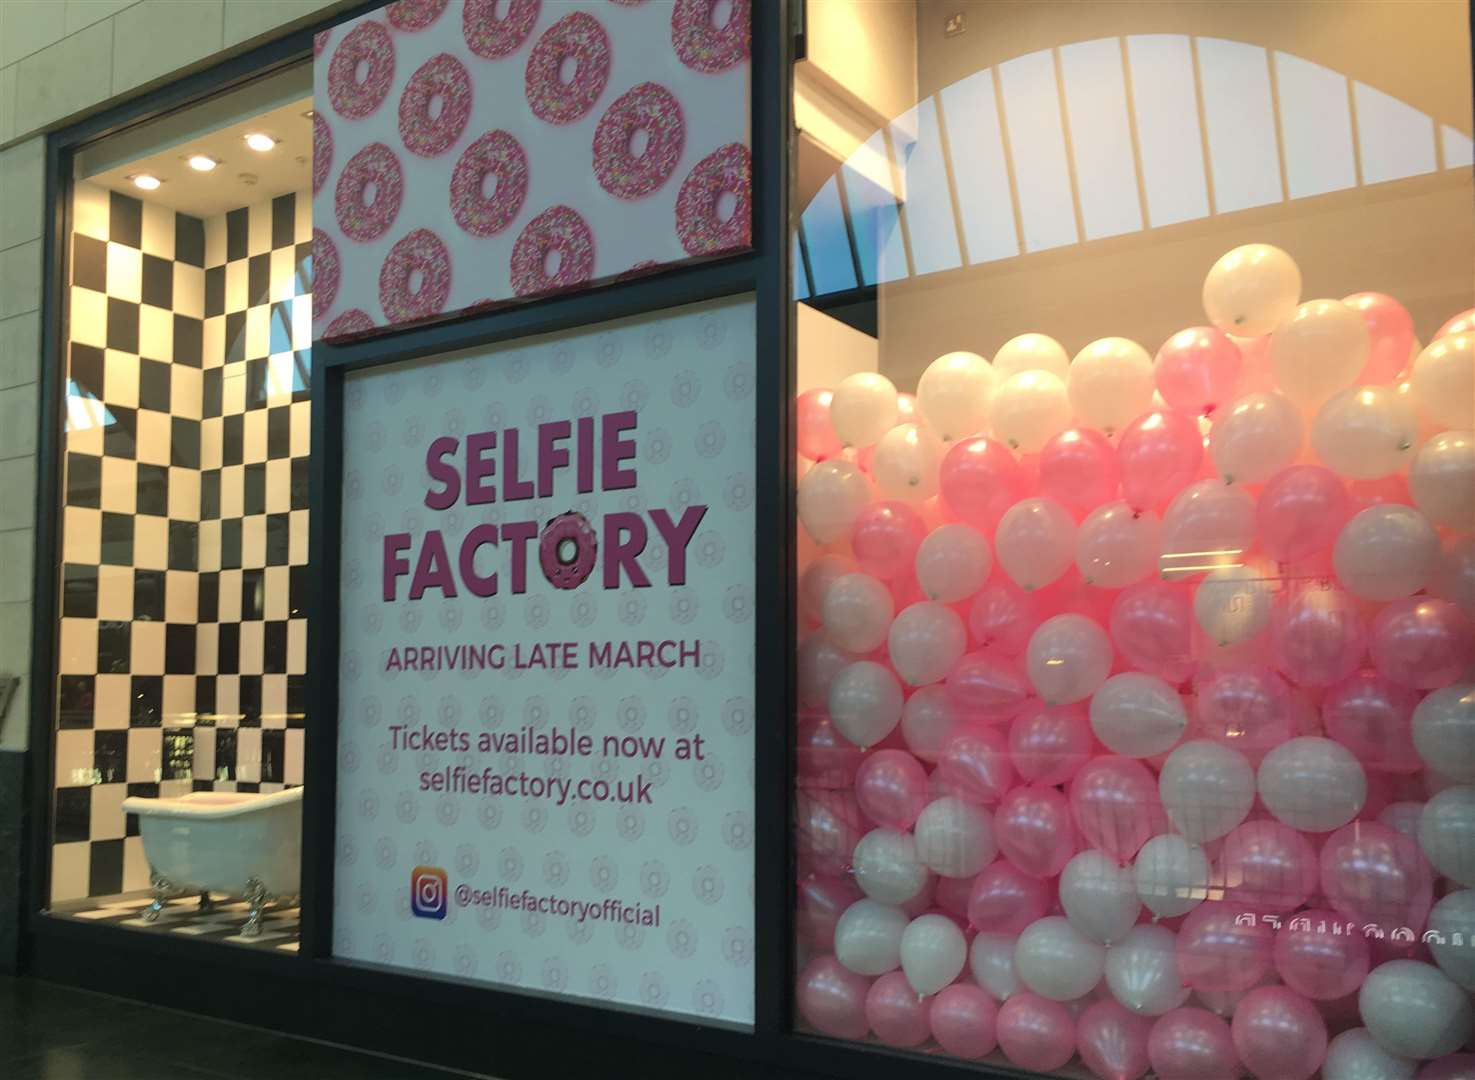 The Selfie Factory opens later this month